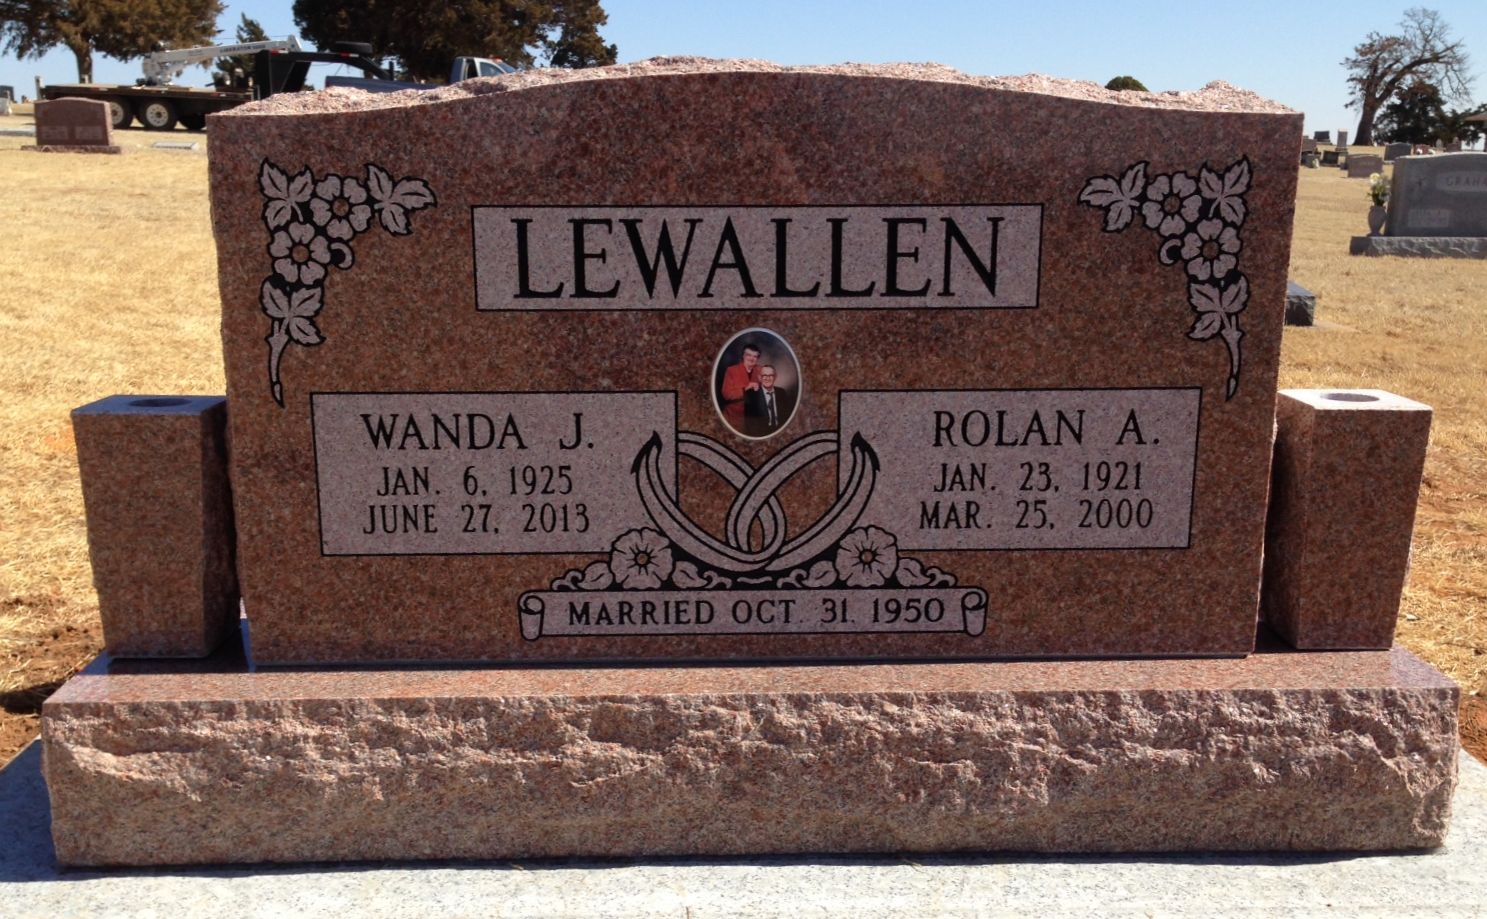 Lewallen - Wellston.jpg